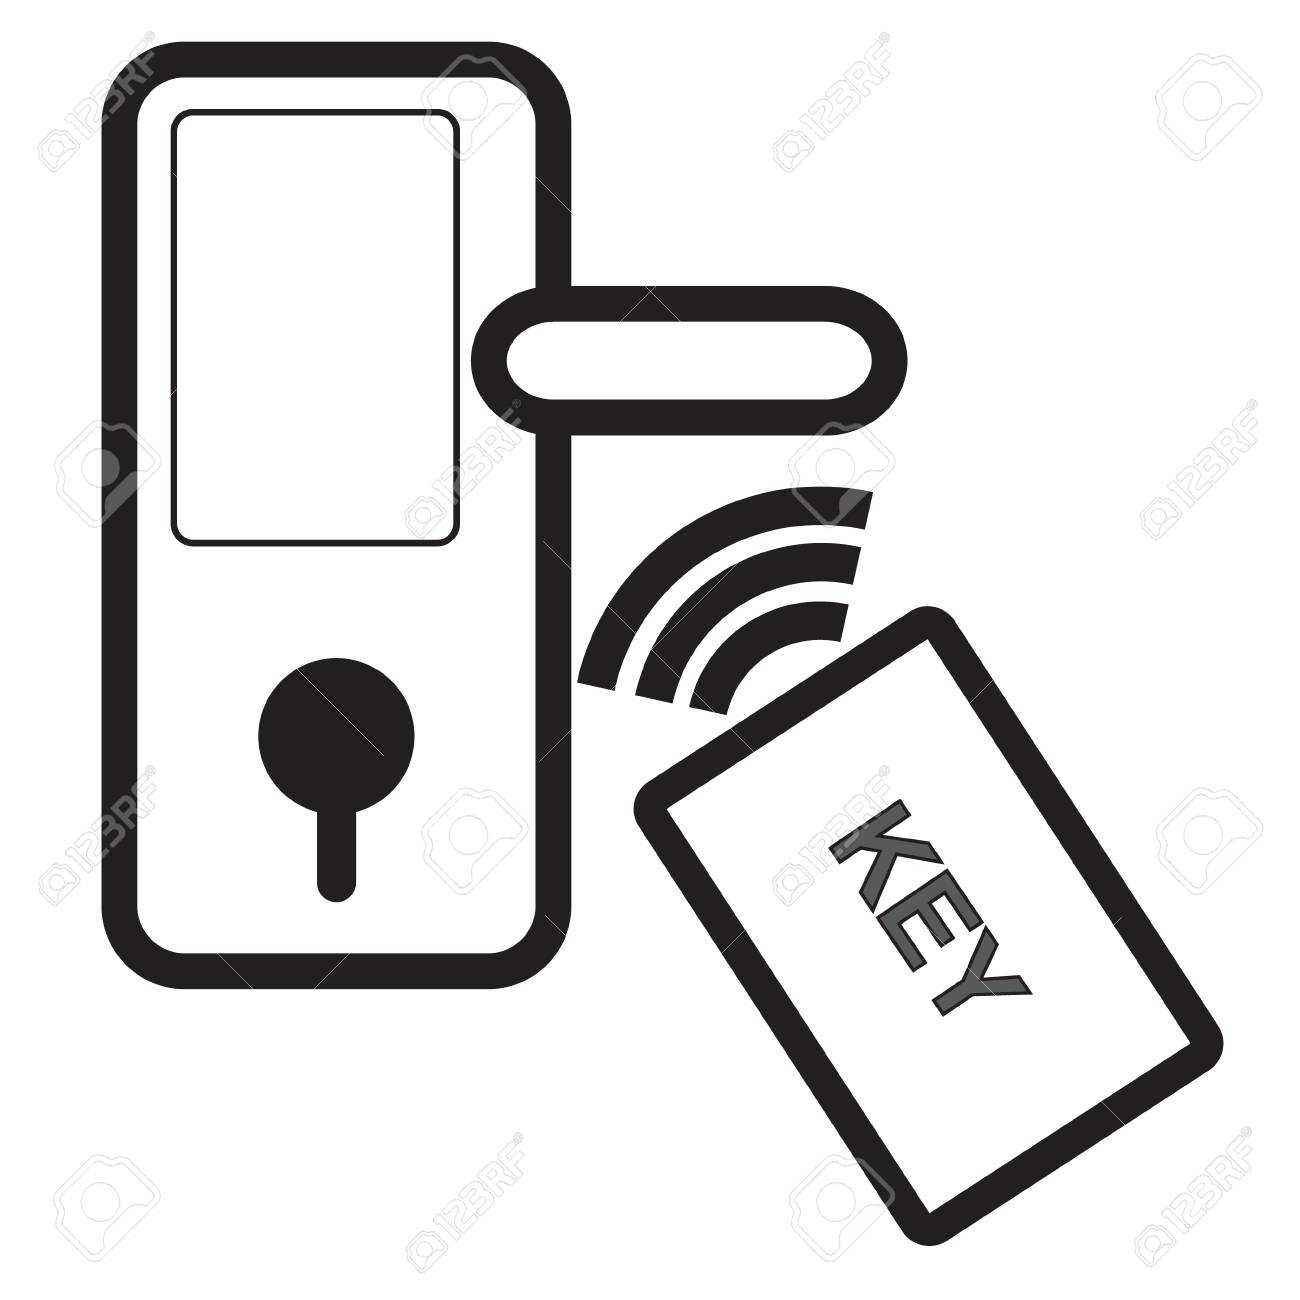 Digital door lock and key wireless card for unlock on isolated